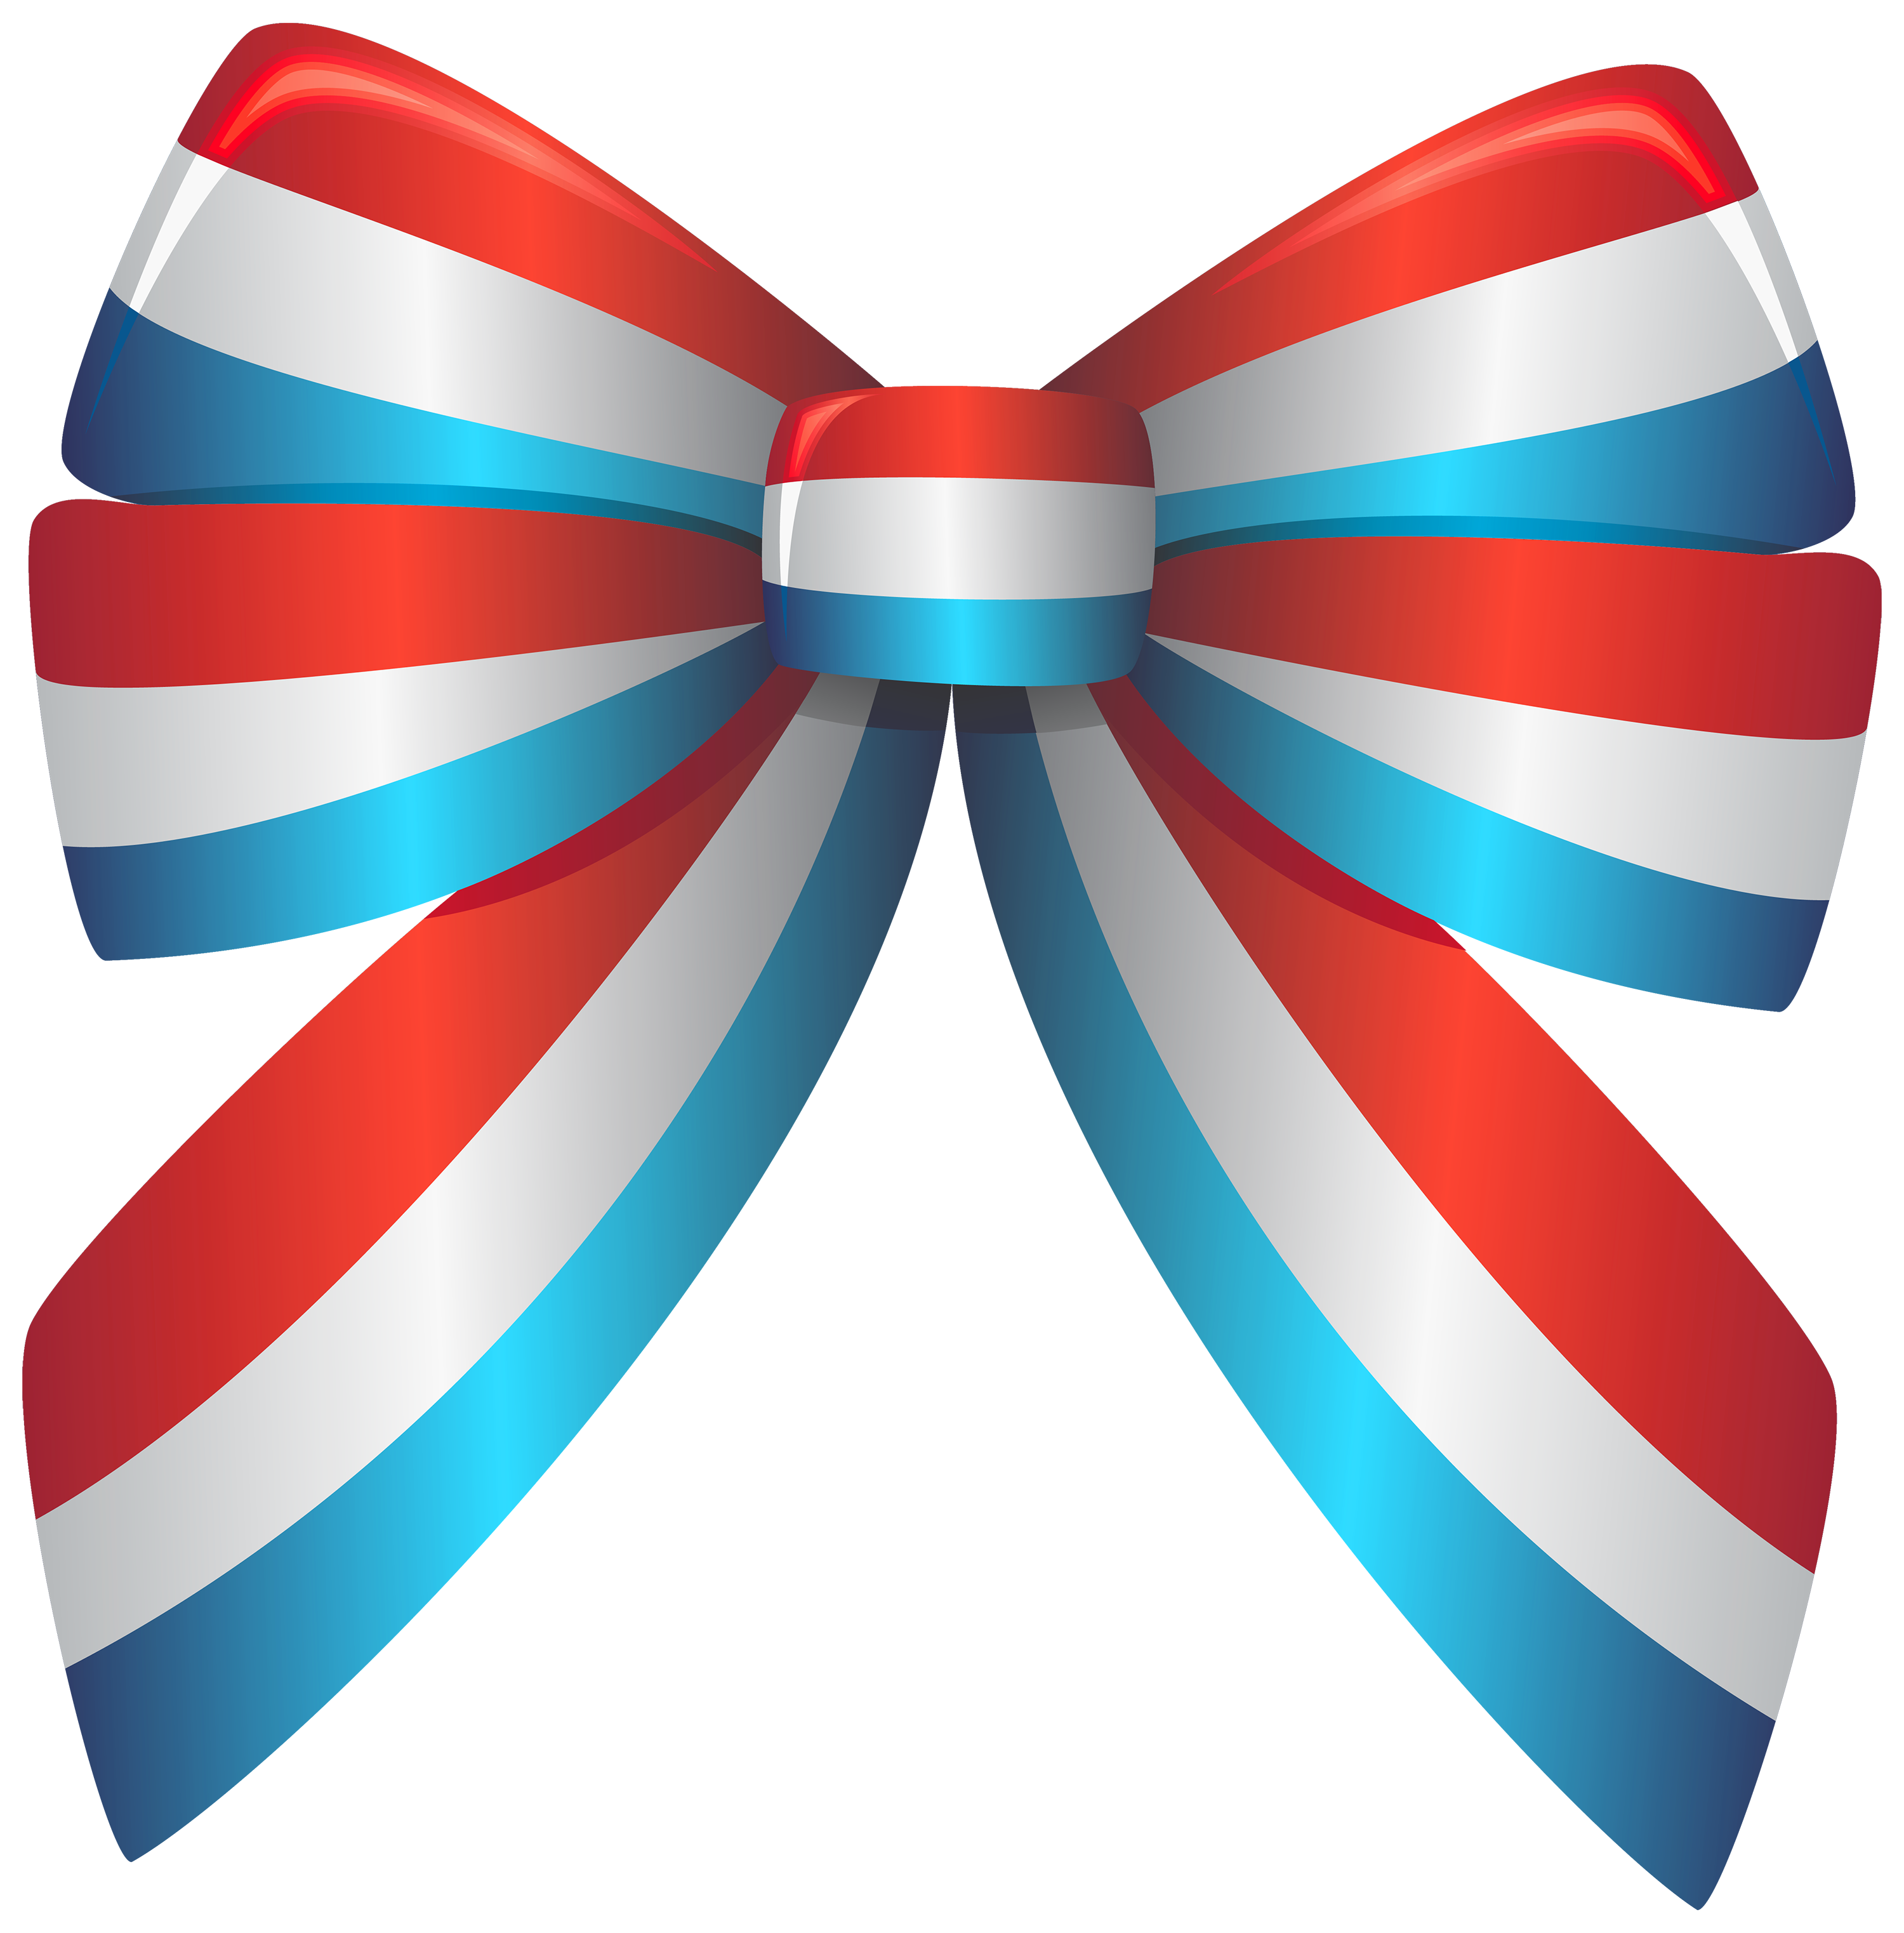 Clipart balloon ribbon. Red white and blue